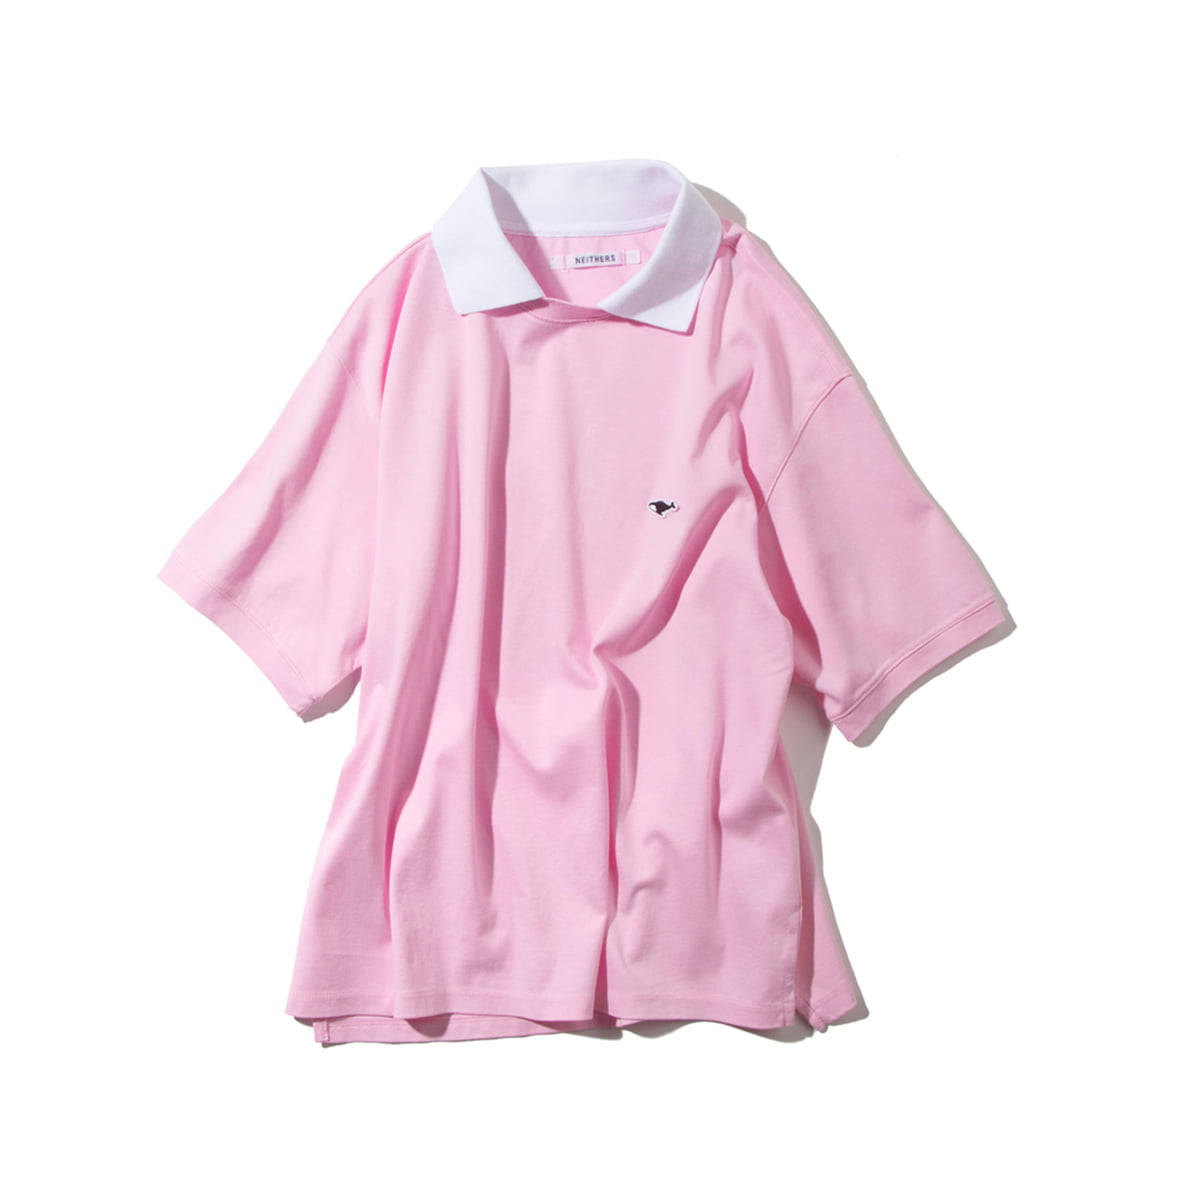 [NEITHERS] 202-1 COLLAR T-SHIRT 'PINK'